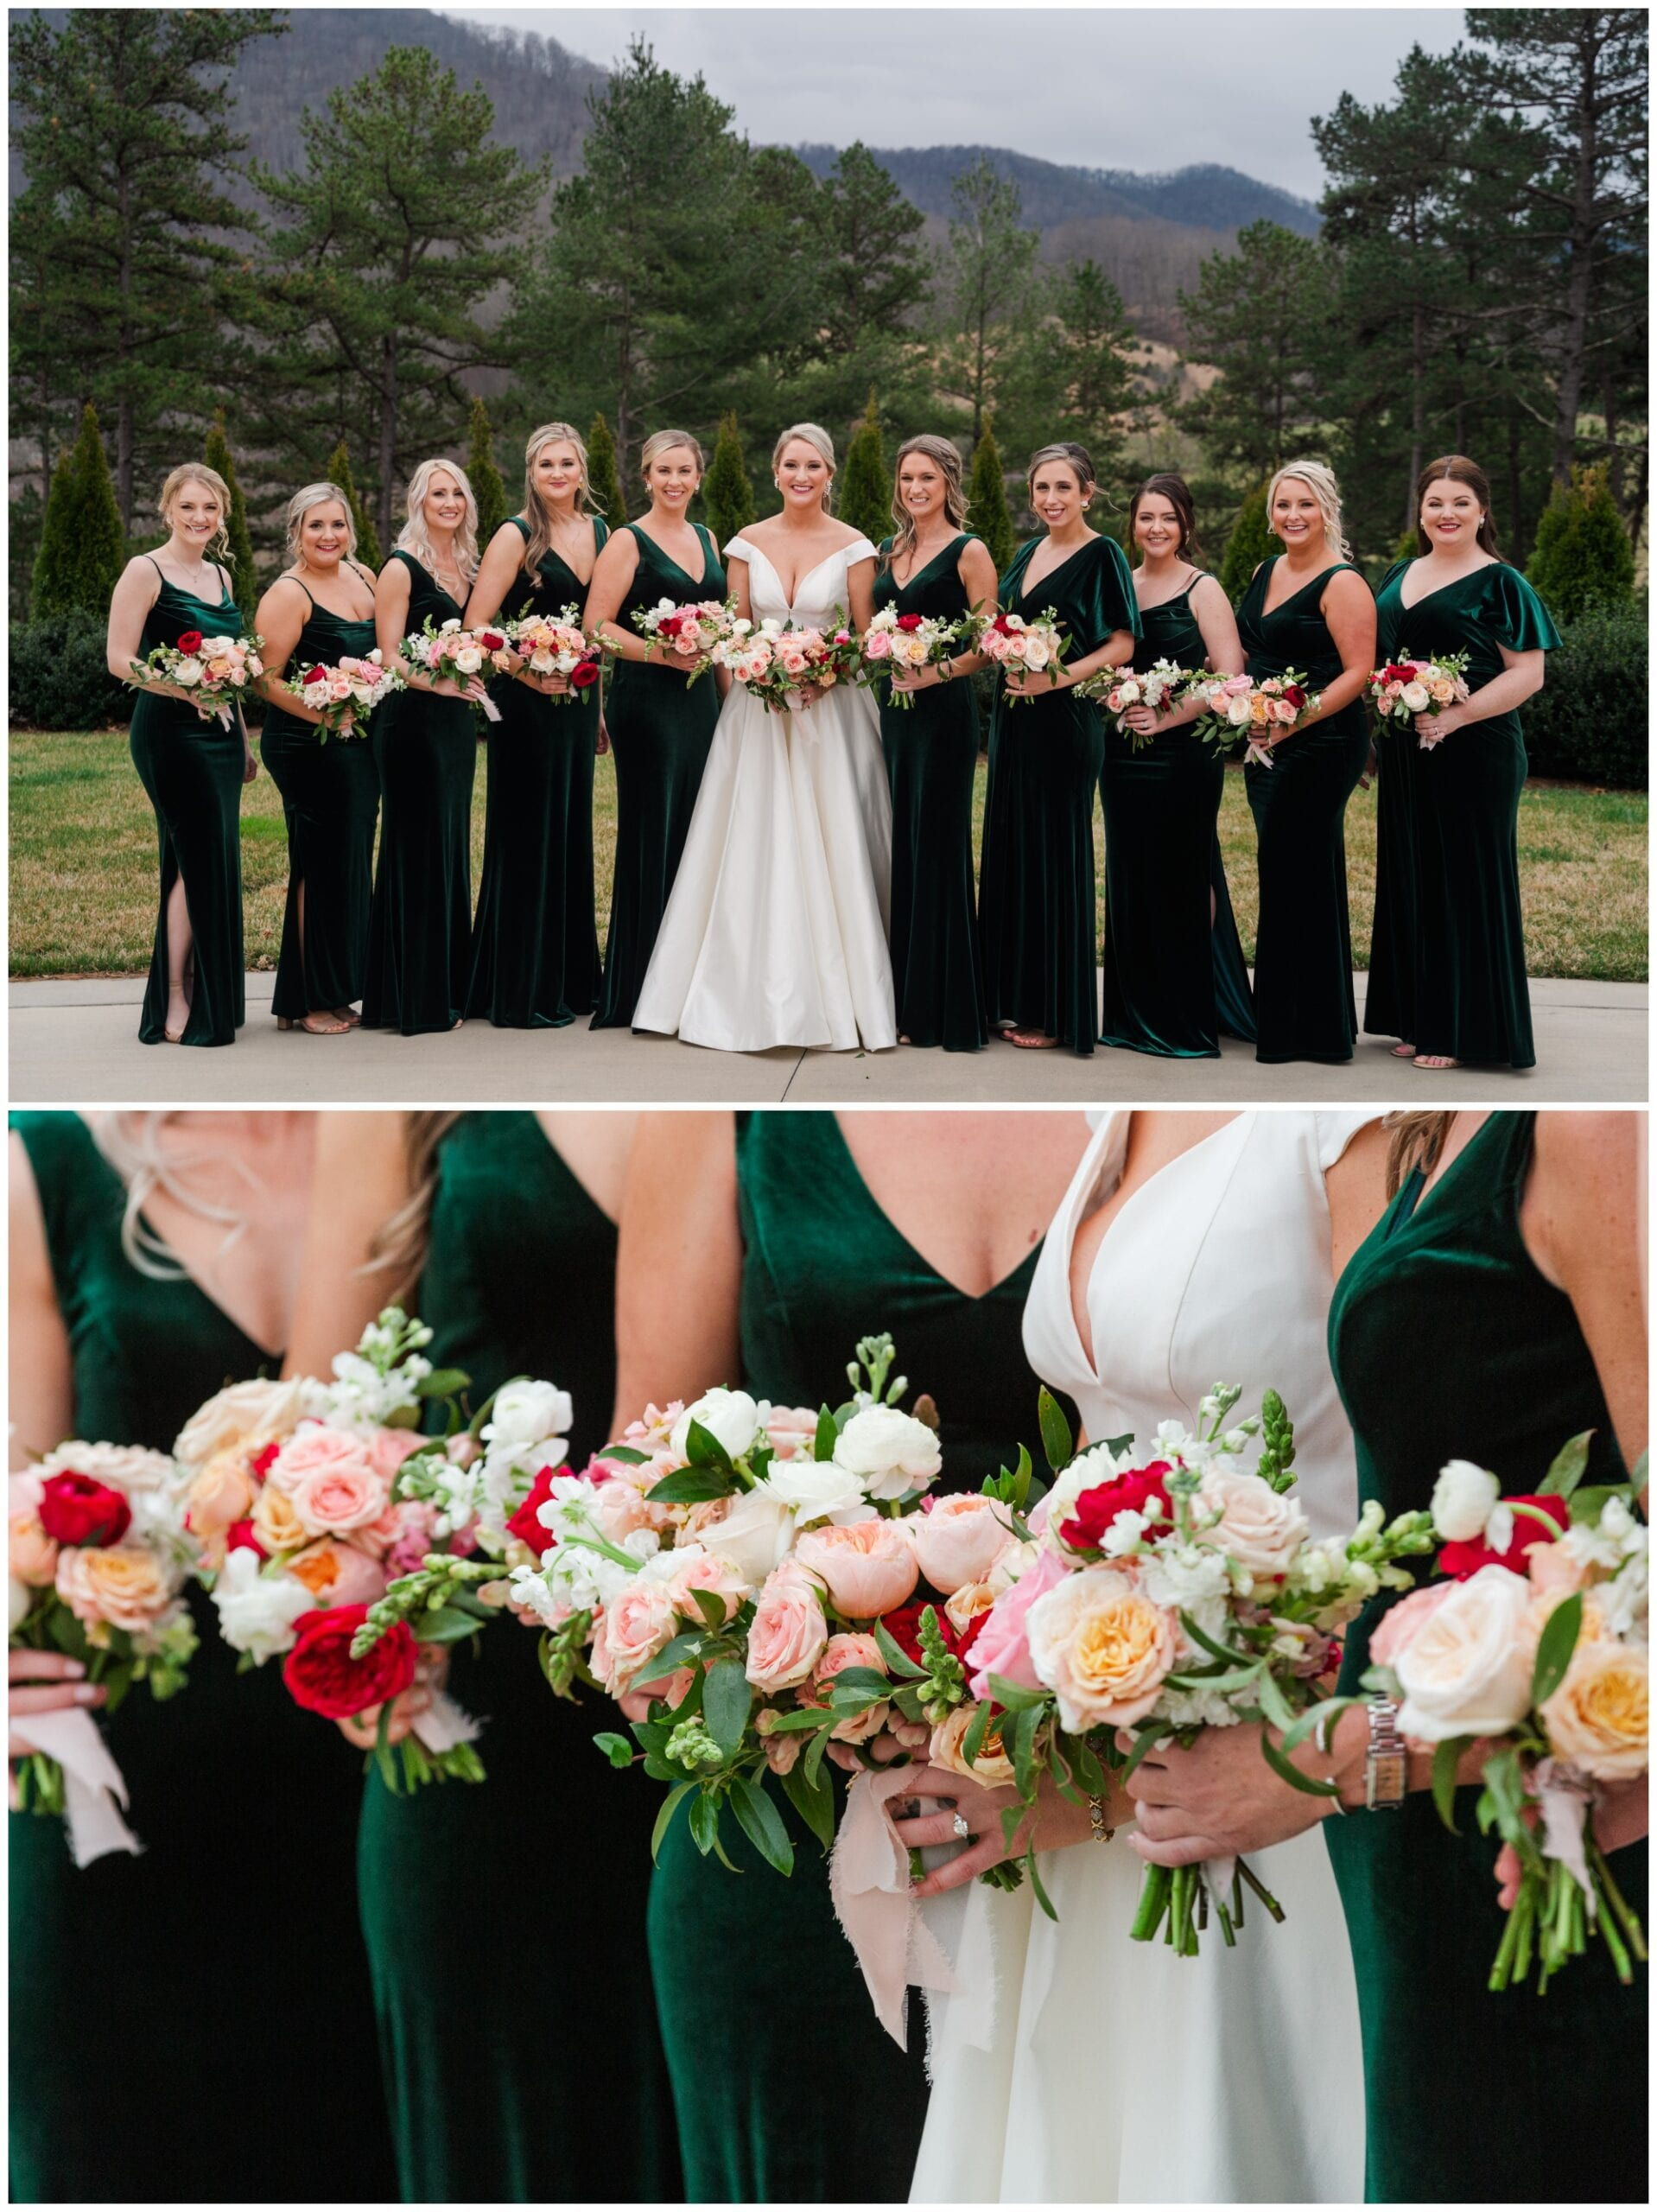 Bridesmaids in Green Velvet Dresses with mountains in the background